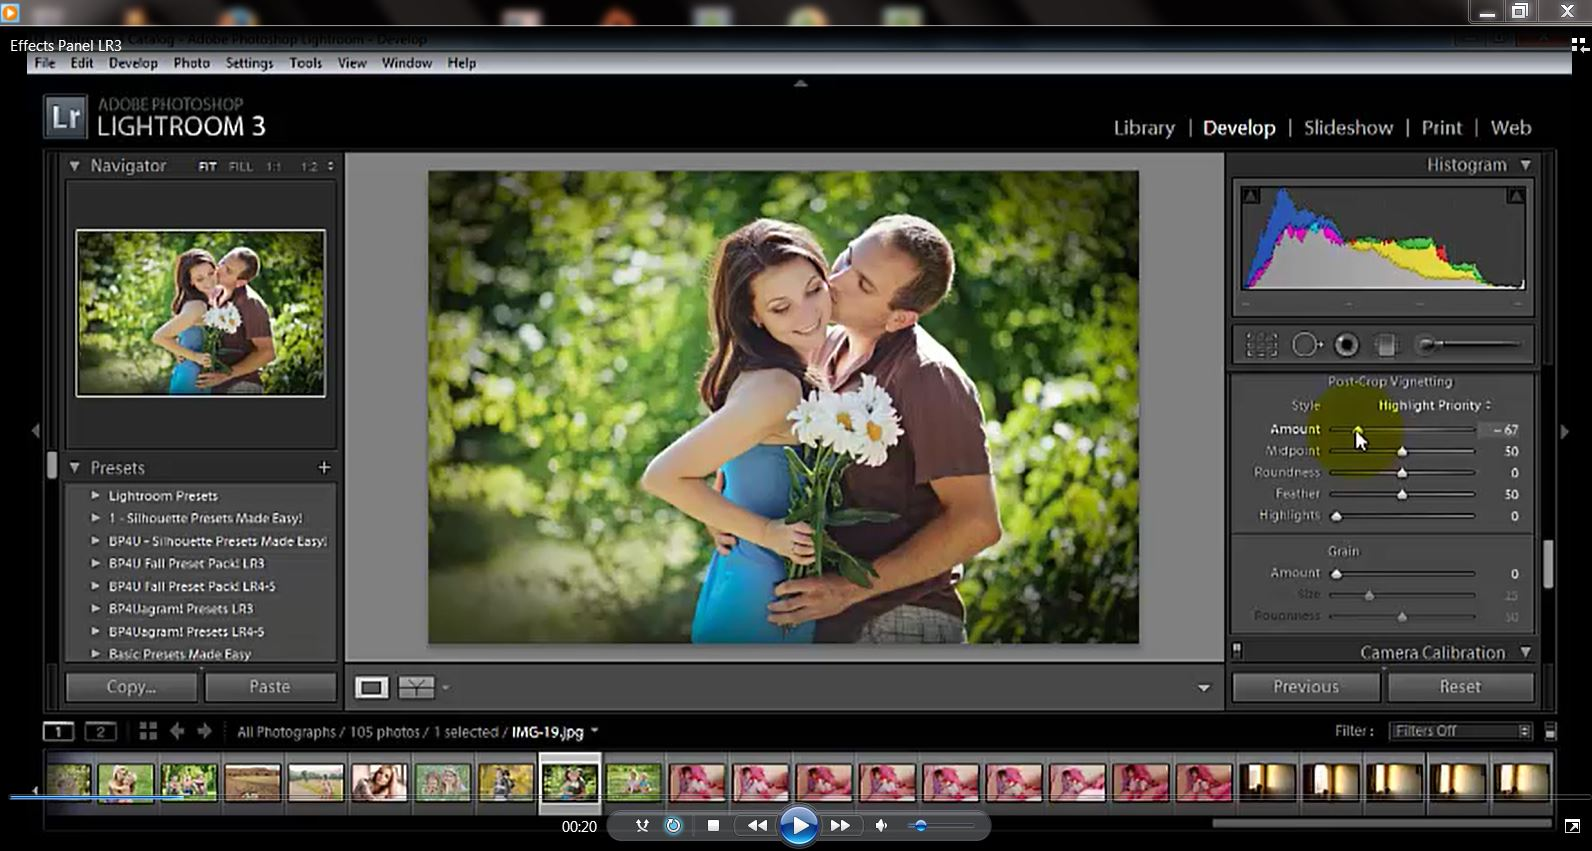 adobe photoshop free download full version for windows 10